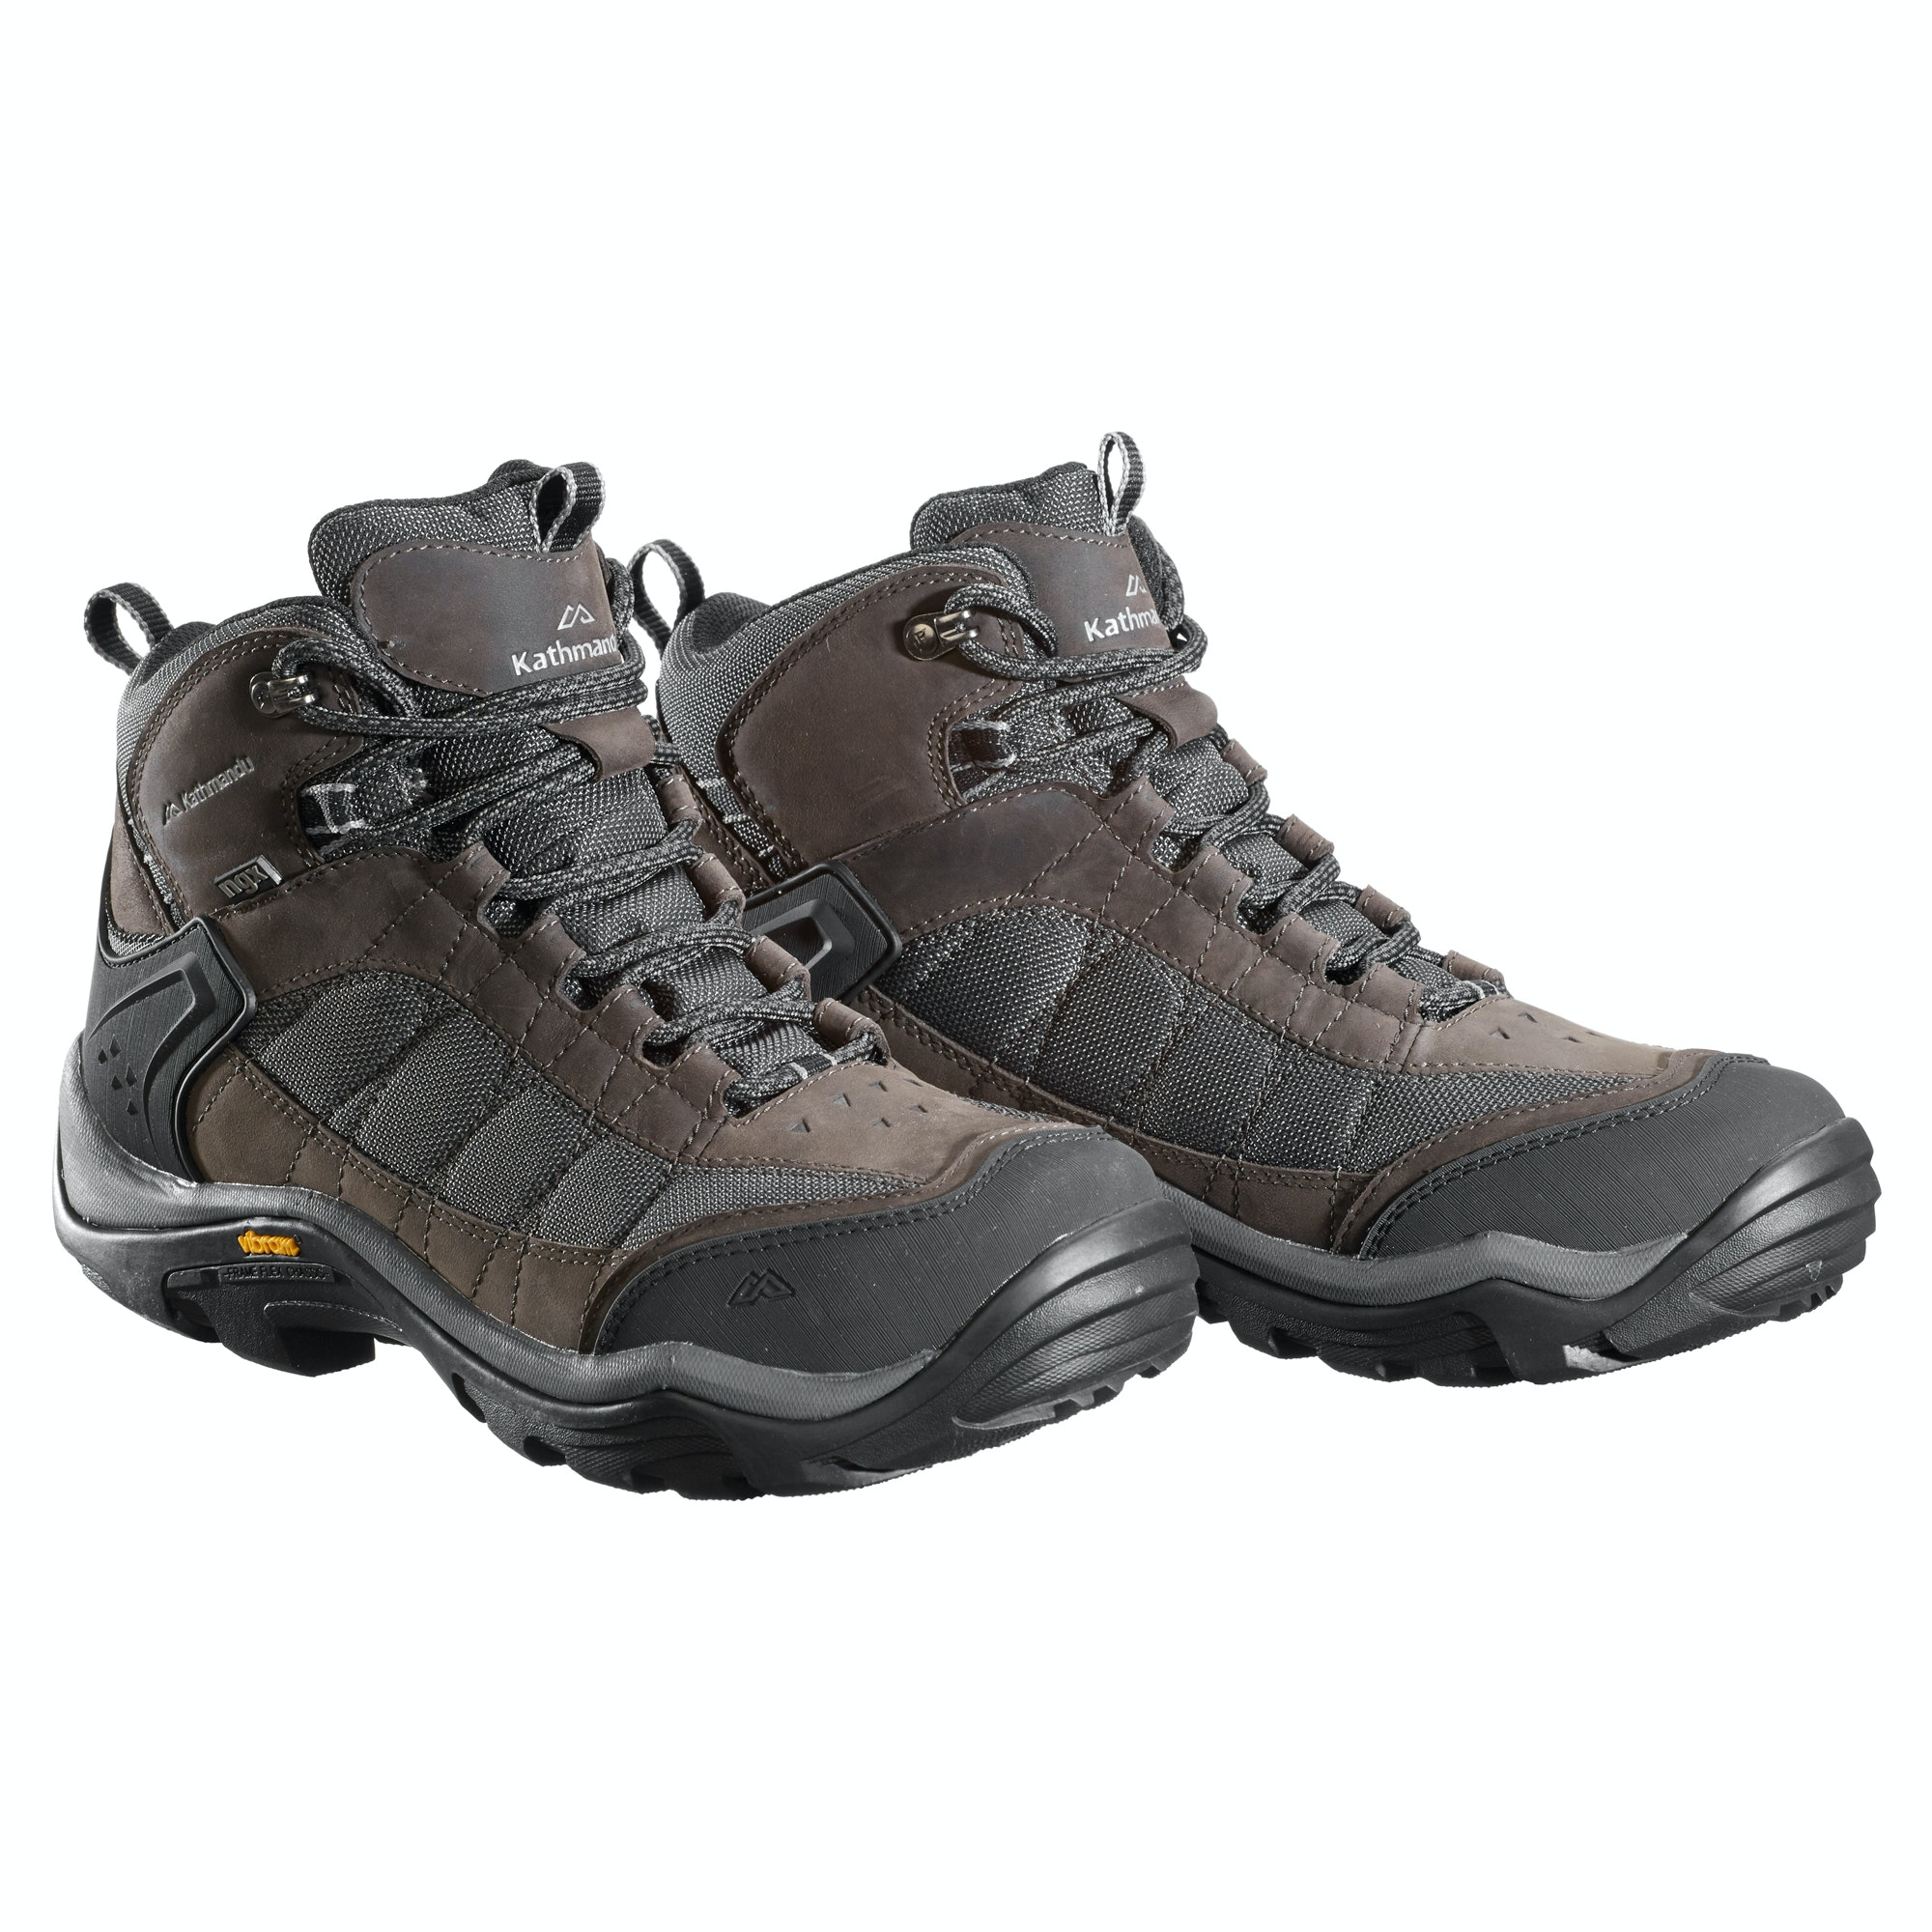 NWT Men's Timberland Rangeley Mid Gore Tex Boots NWT